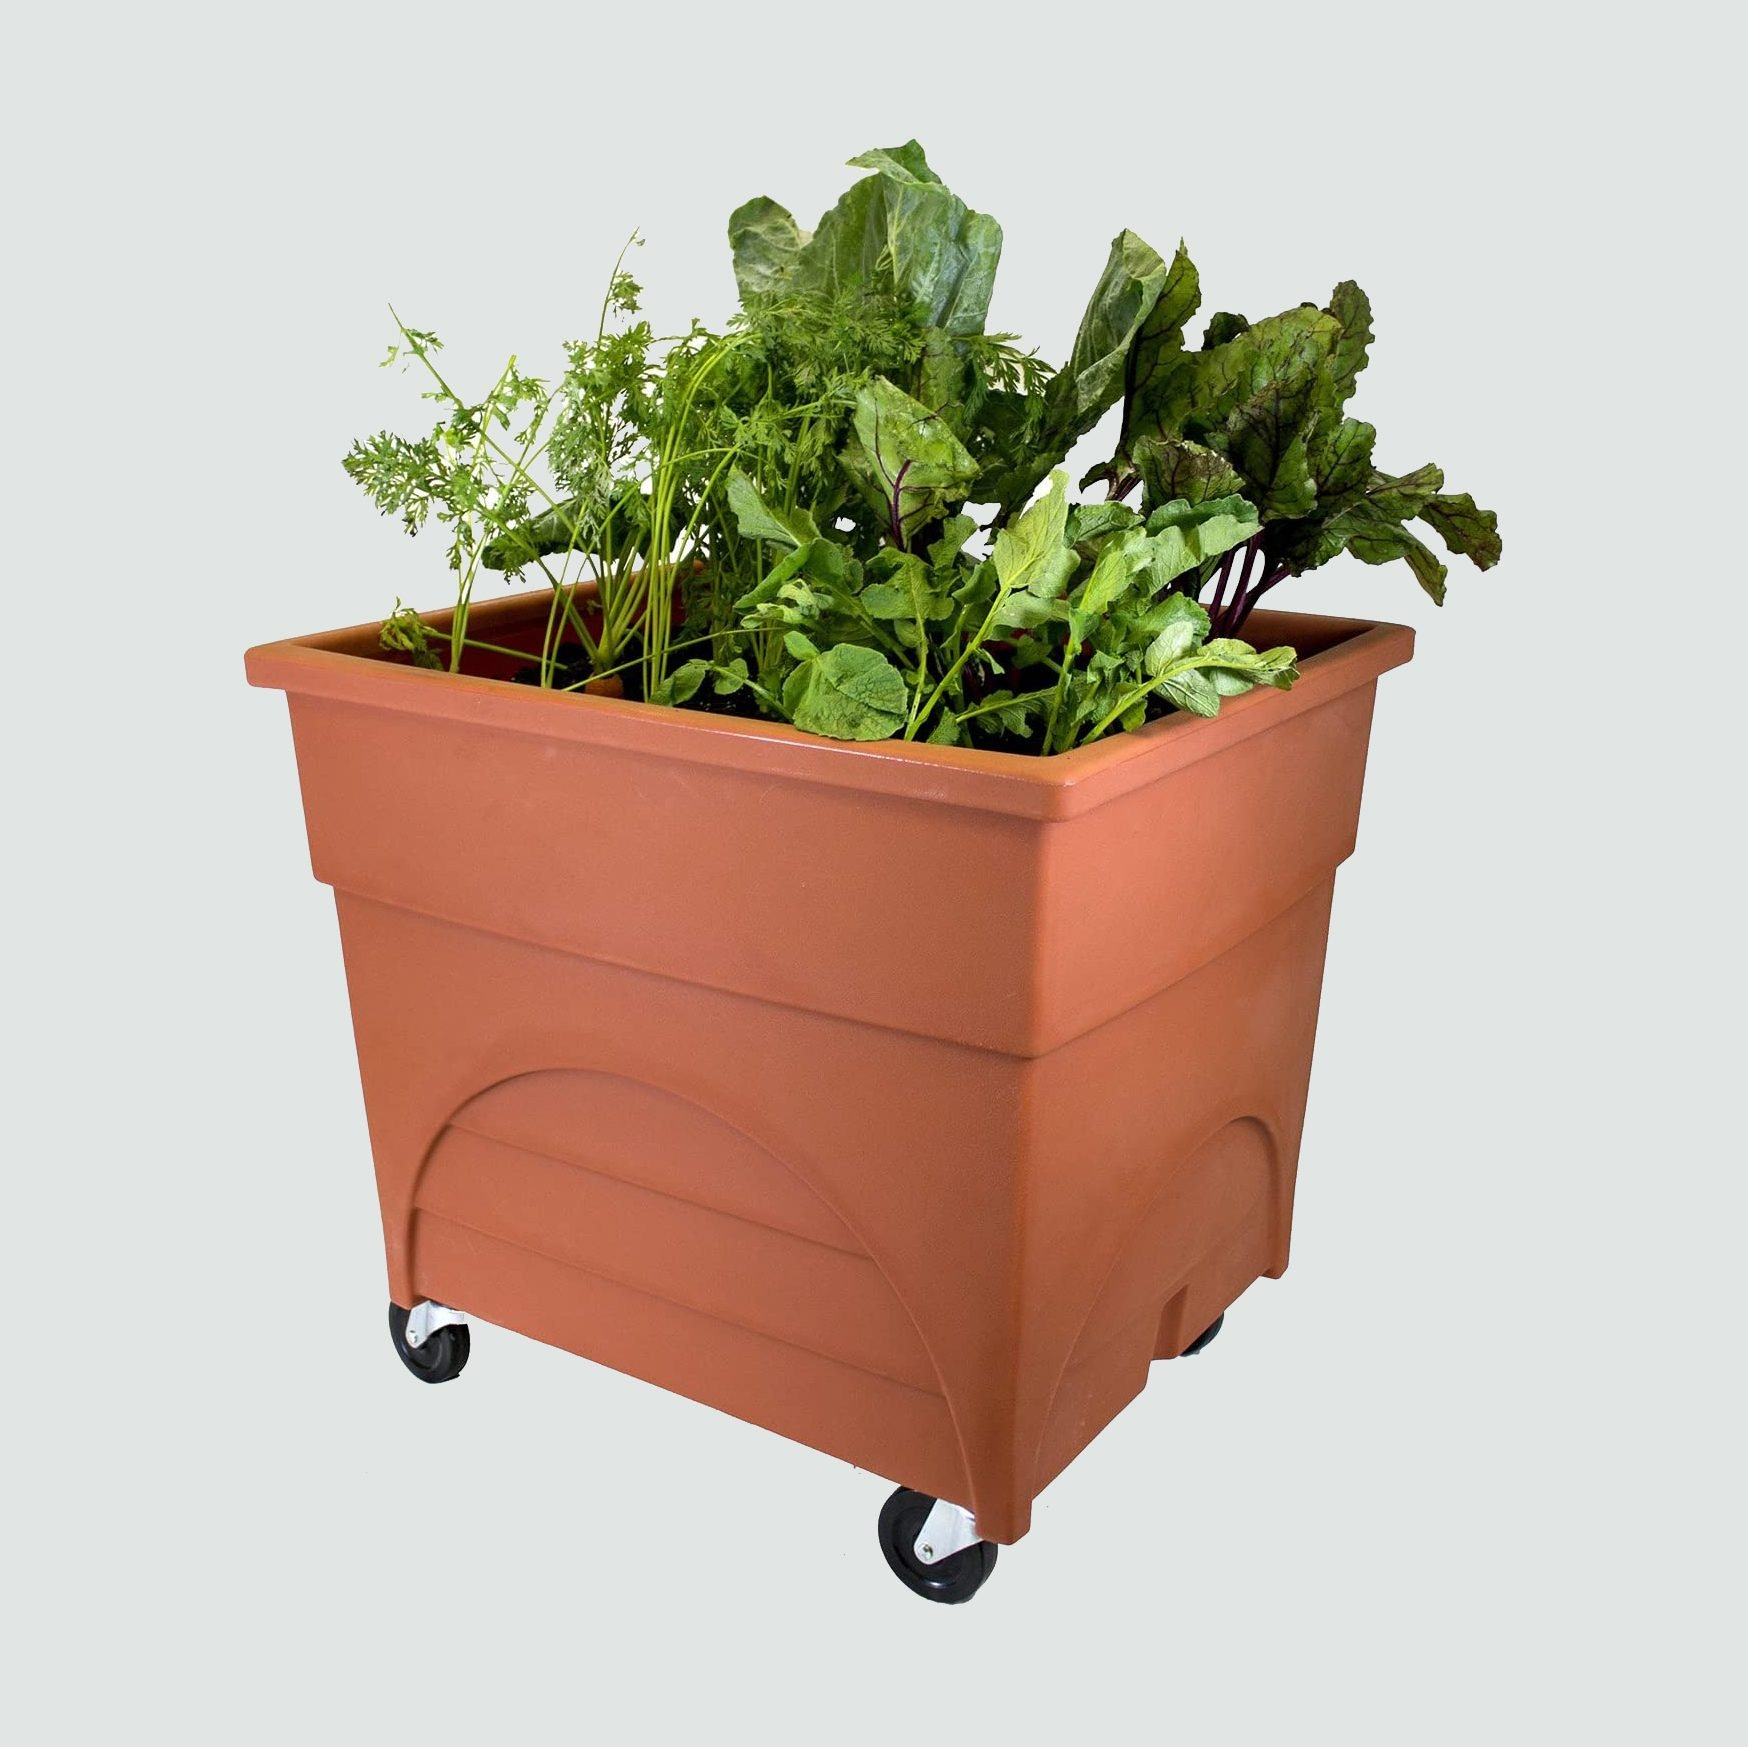 Emsco Group Root Vegetable Raised Bed Grow Box